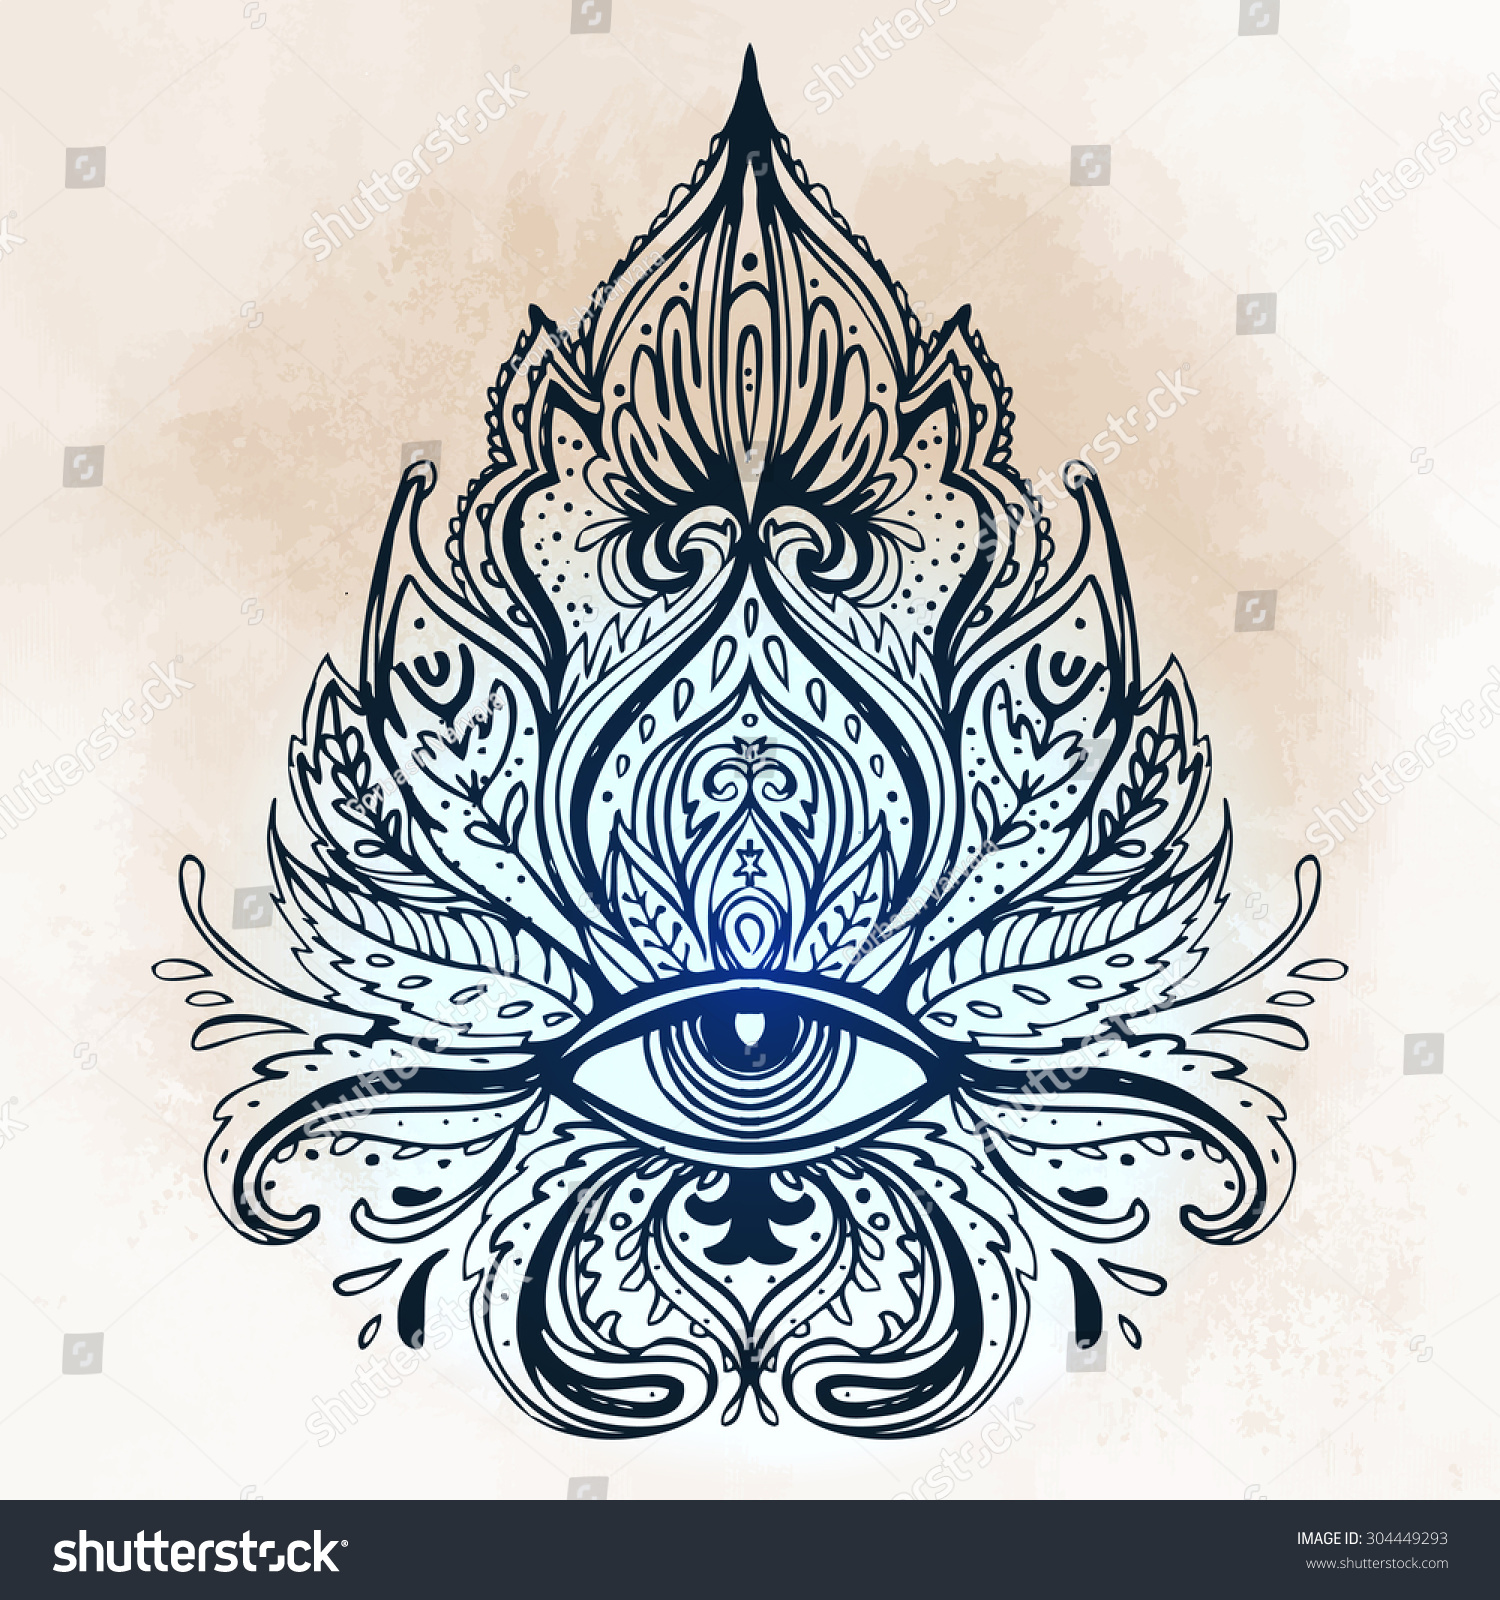 All Seeing Eye Ornate Composition Hand Stock Vector